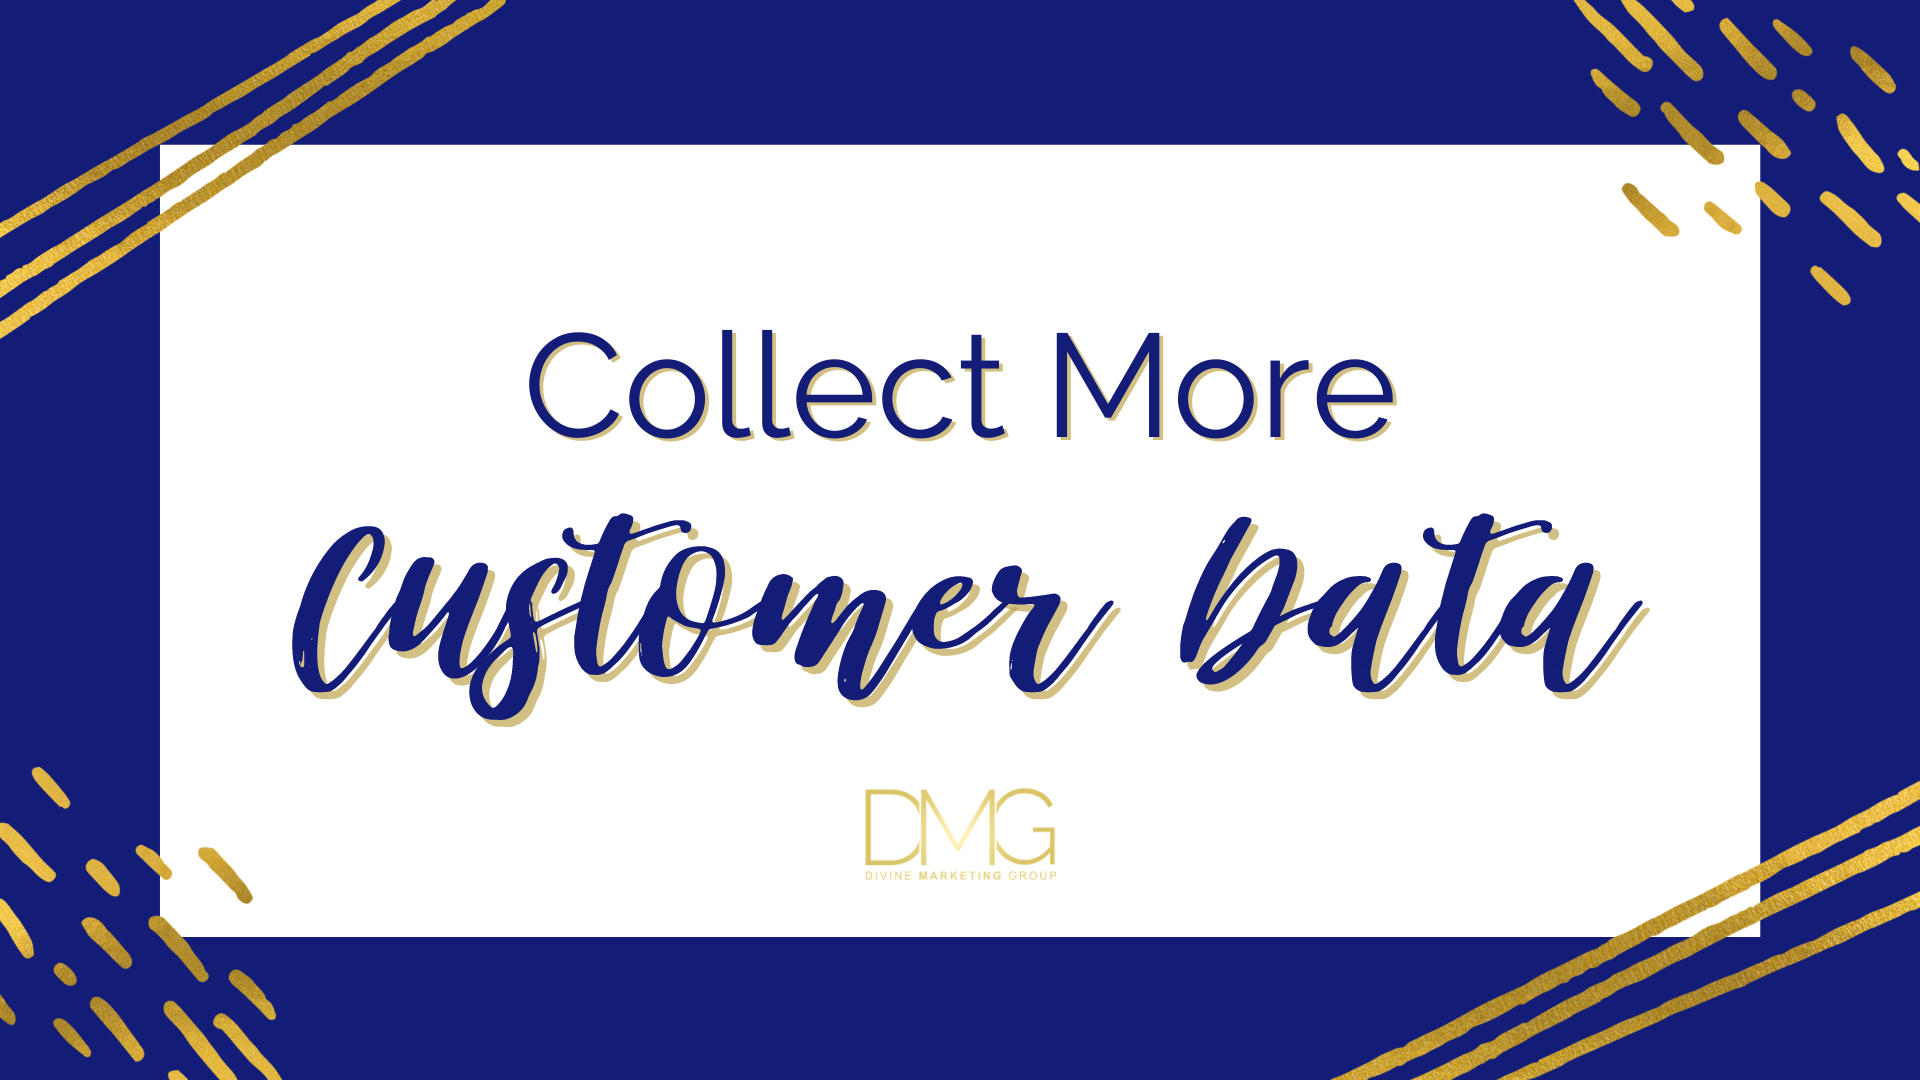 Marketing Tip 4 - Collect More Customer Data